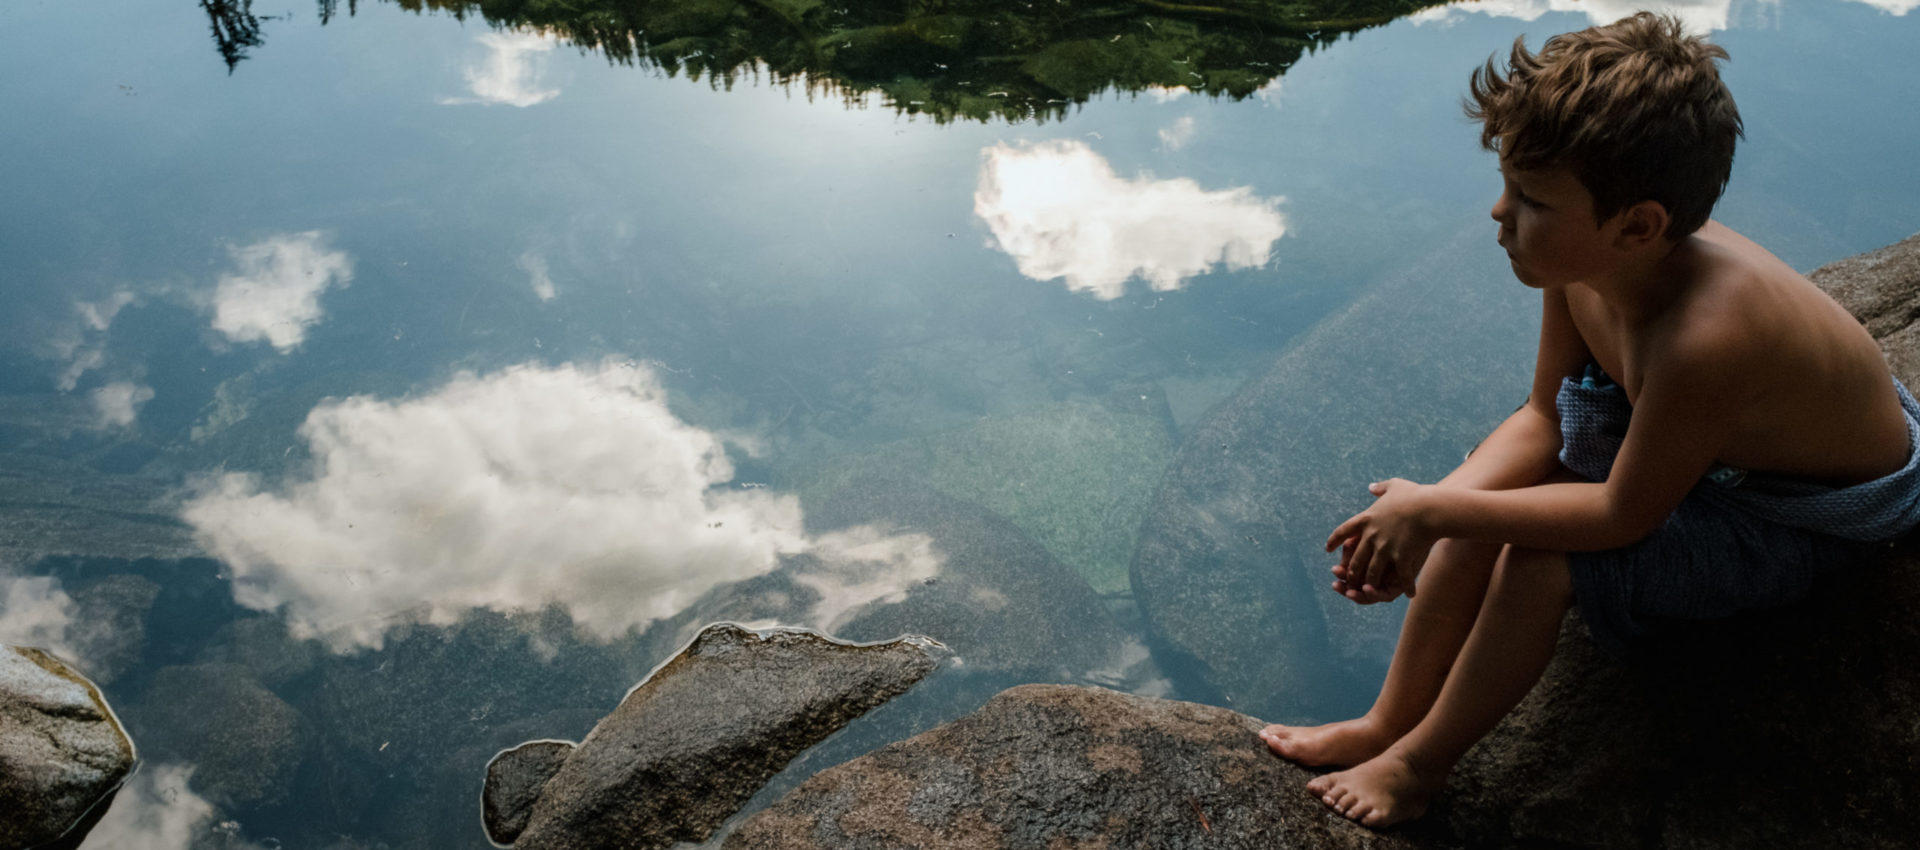 young boy sits by the water where clouds and mountains are reflected